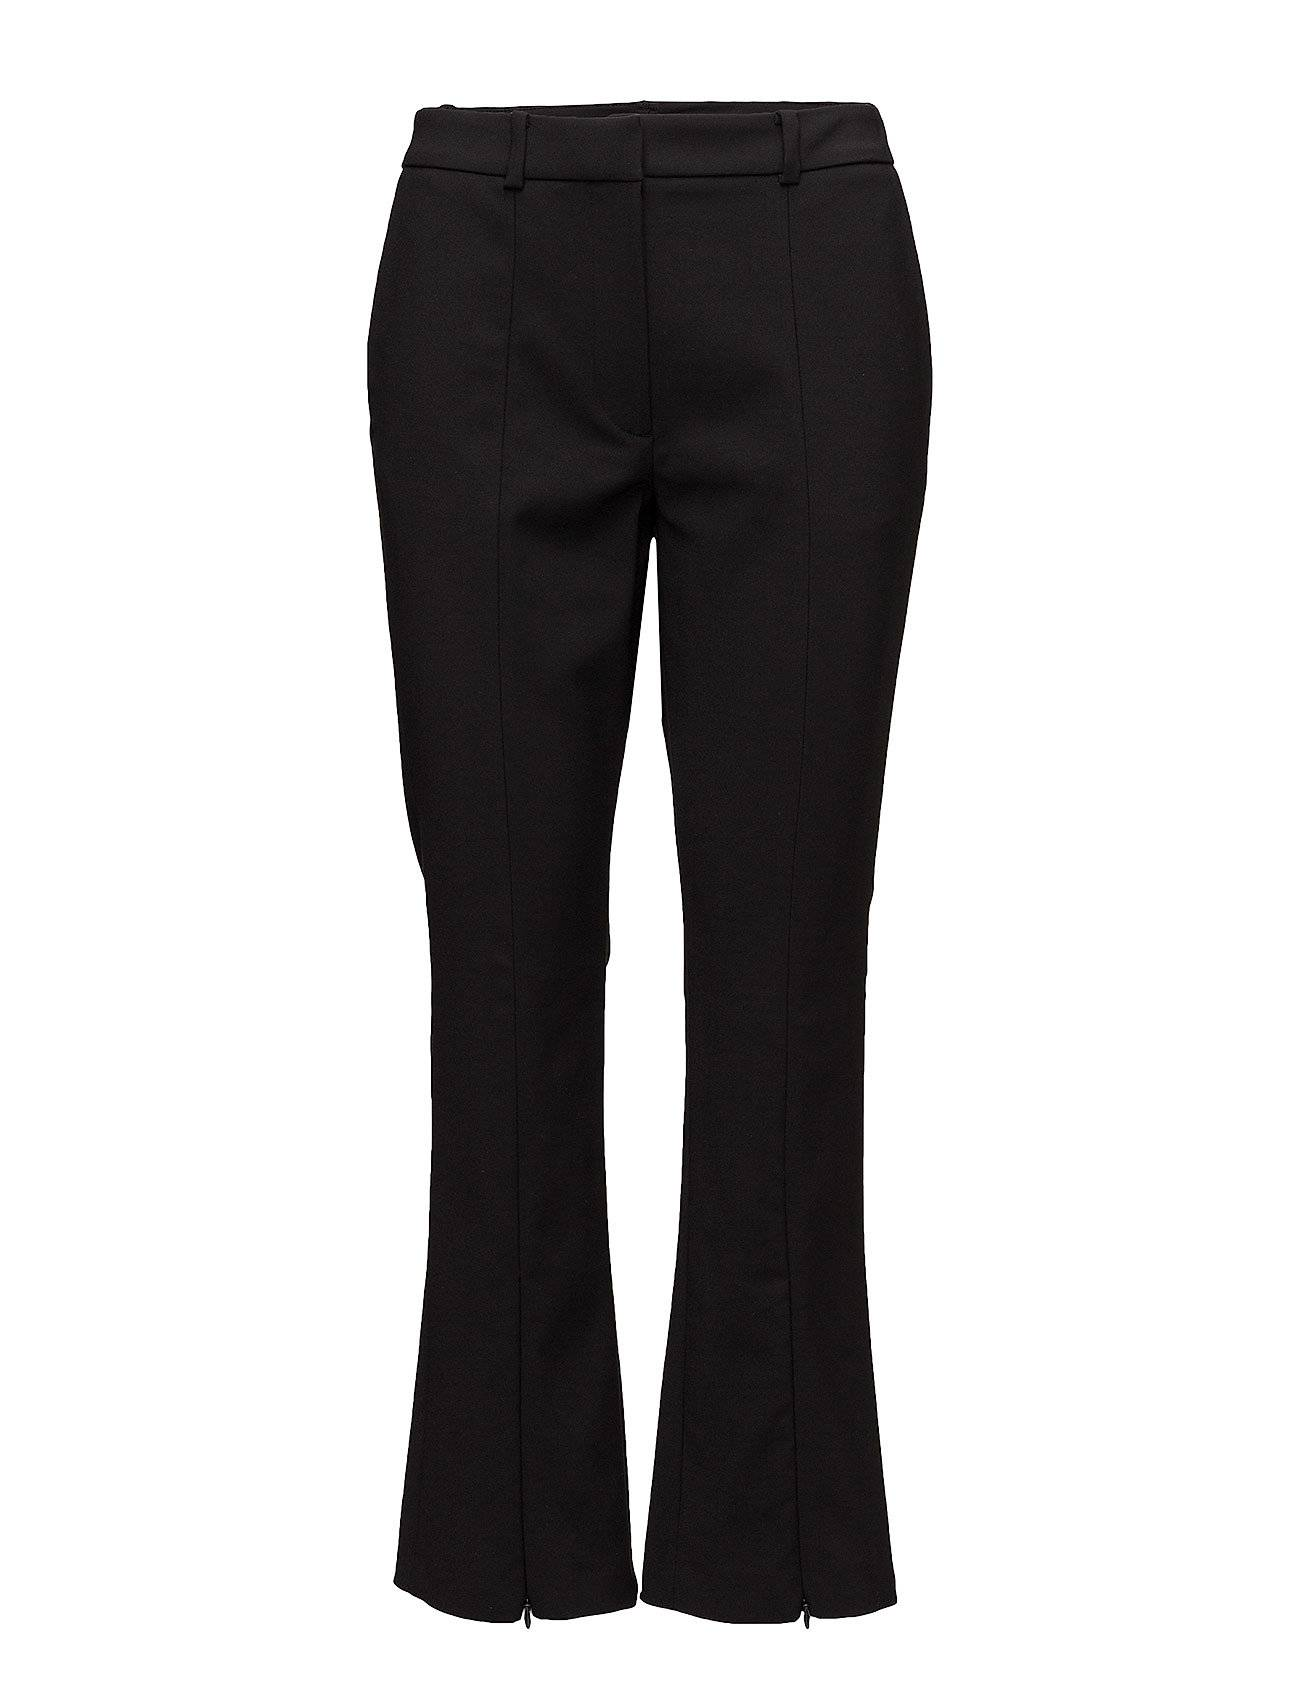 French Connection Glass Stretch Trouser